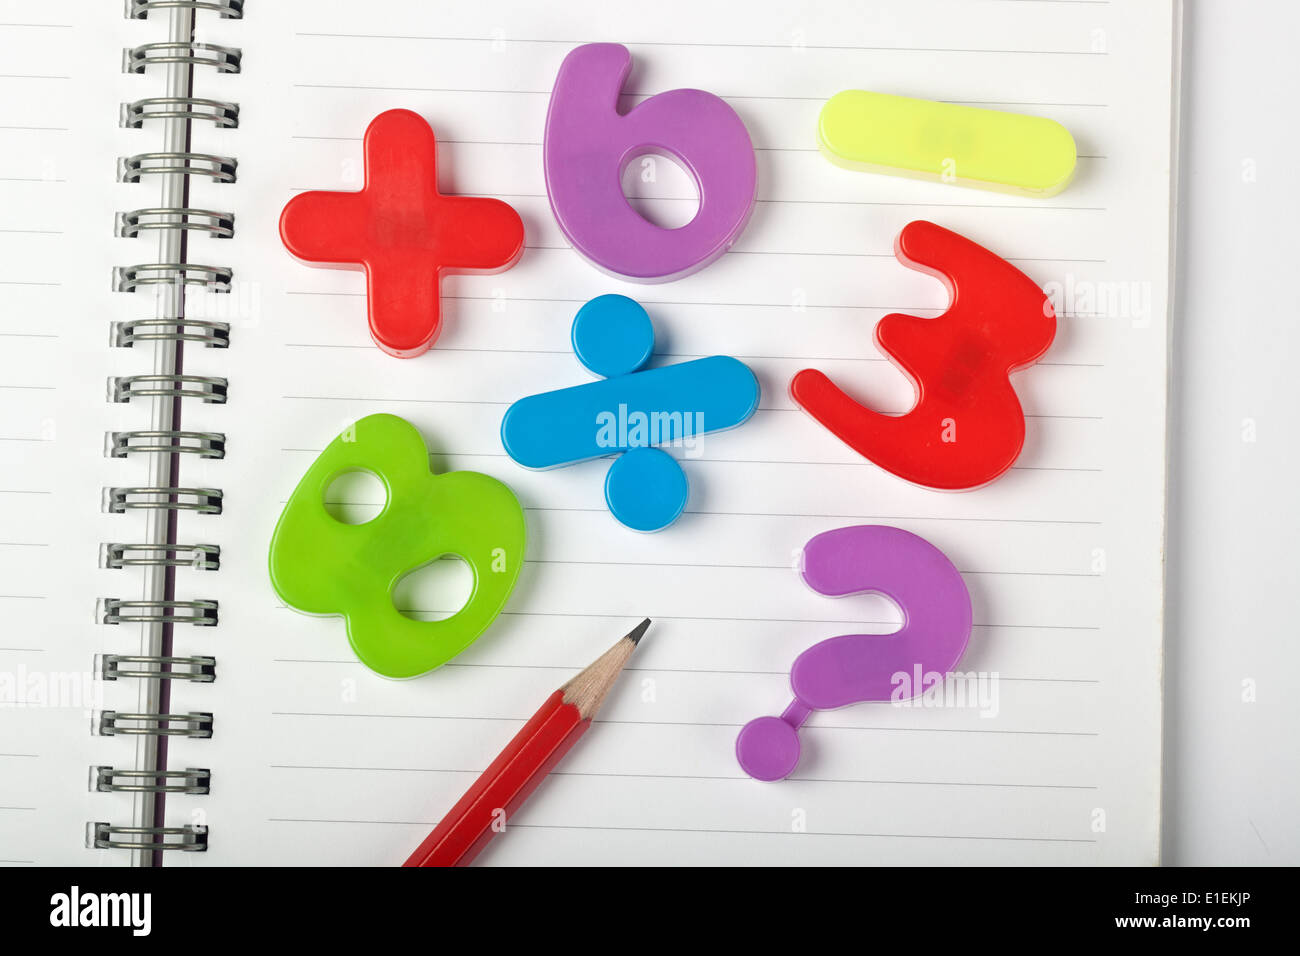 Symbols Of Numbers And Mathematical Signs On Top Of A Notepad Stock